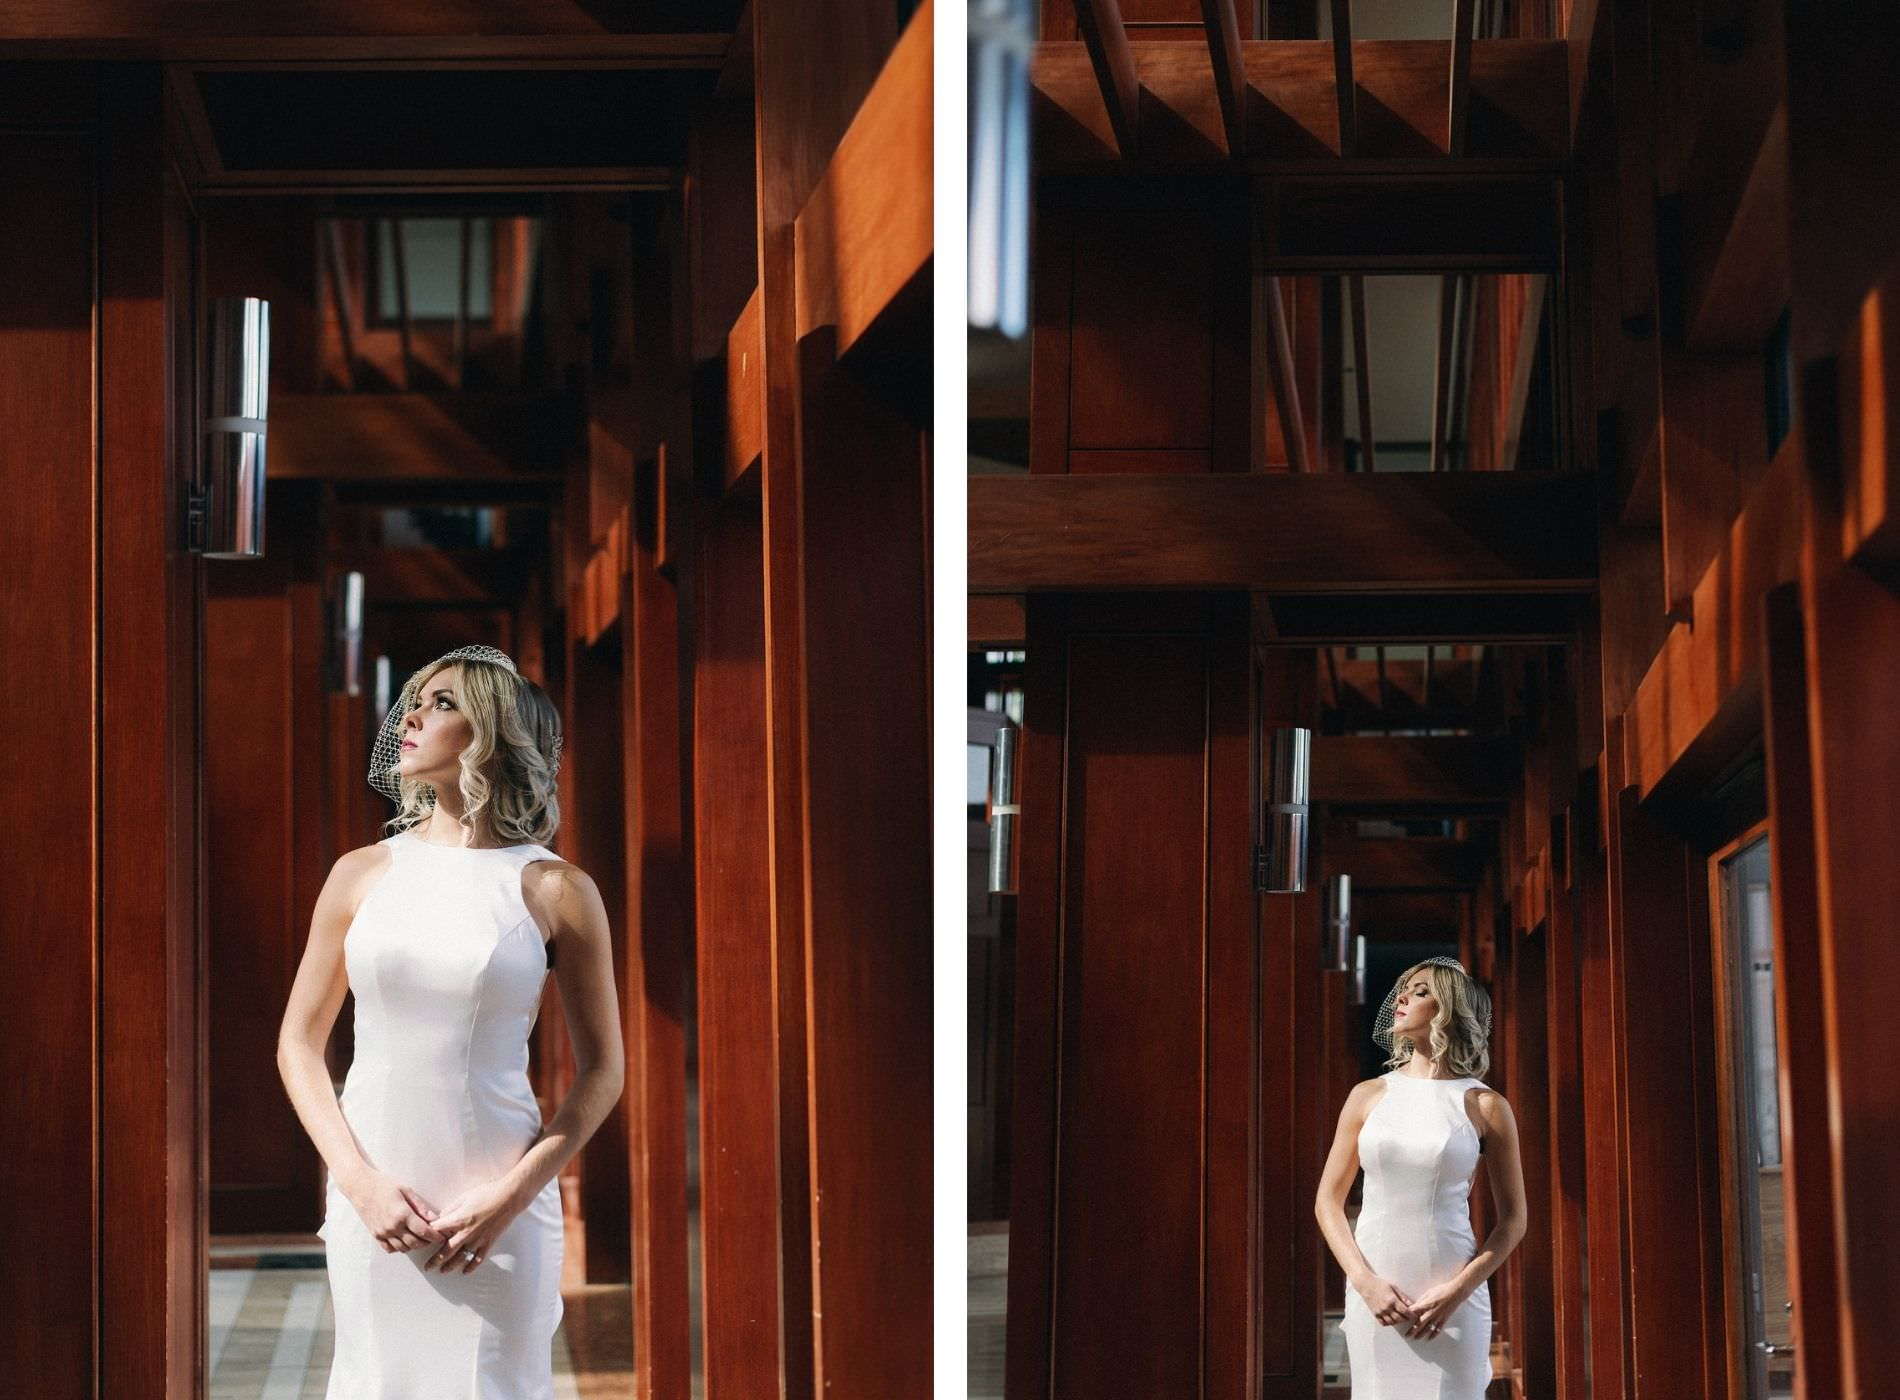 LoAdoro Bridal Sleek Fitted Modern Wedding Dress Bridal Gown with Birdcage Veil from Tampa Bridal Shop Truly Forever Bridal   The Poynter Institute   Dewitt for Love Photography